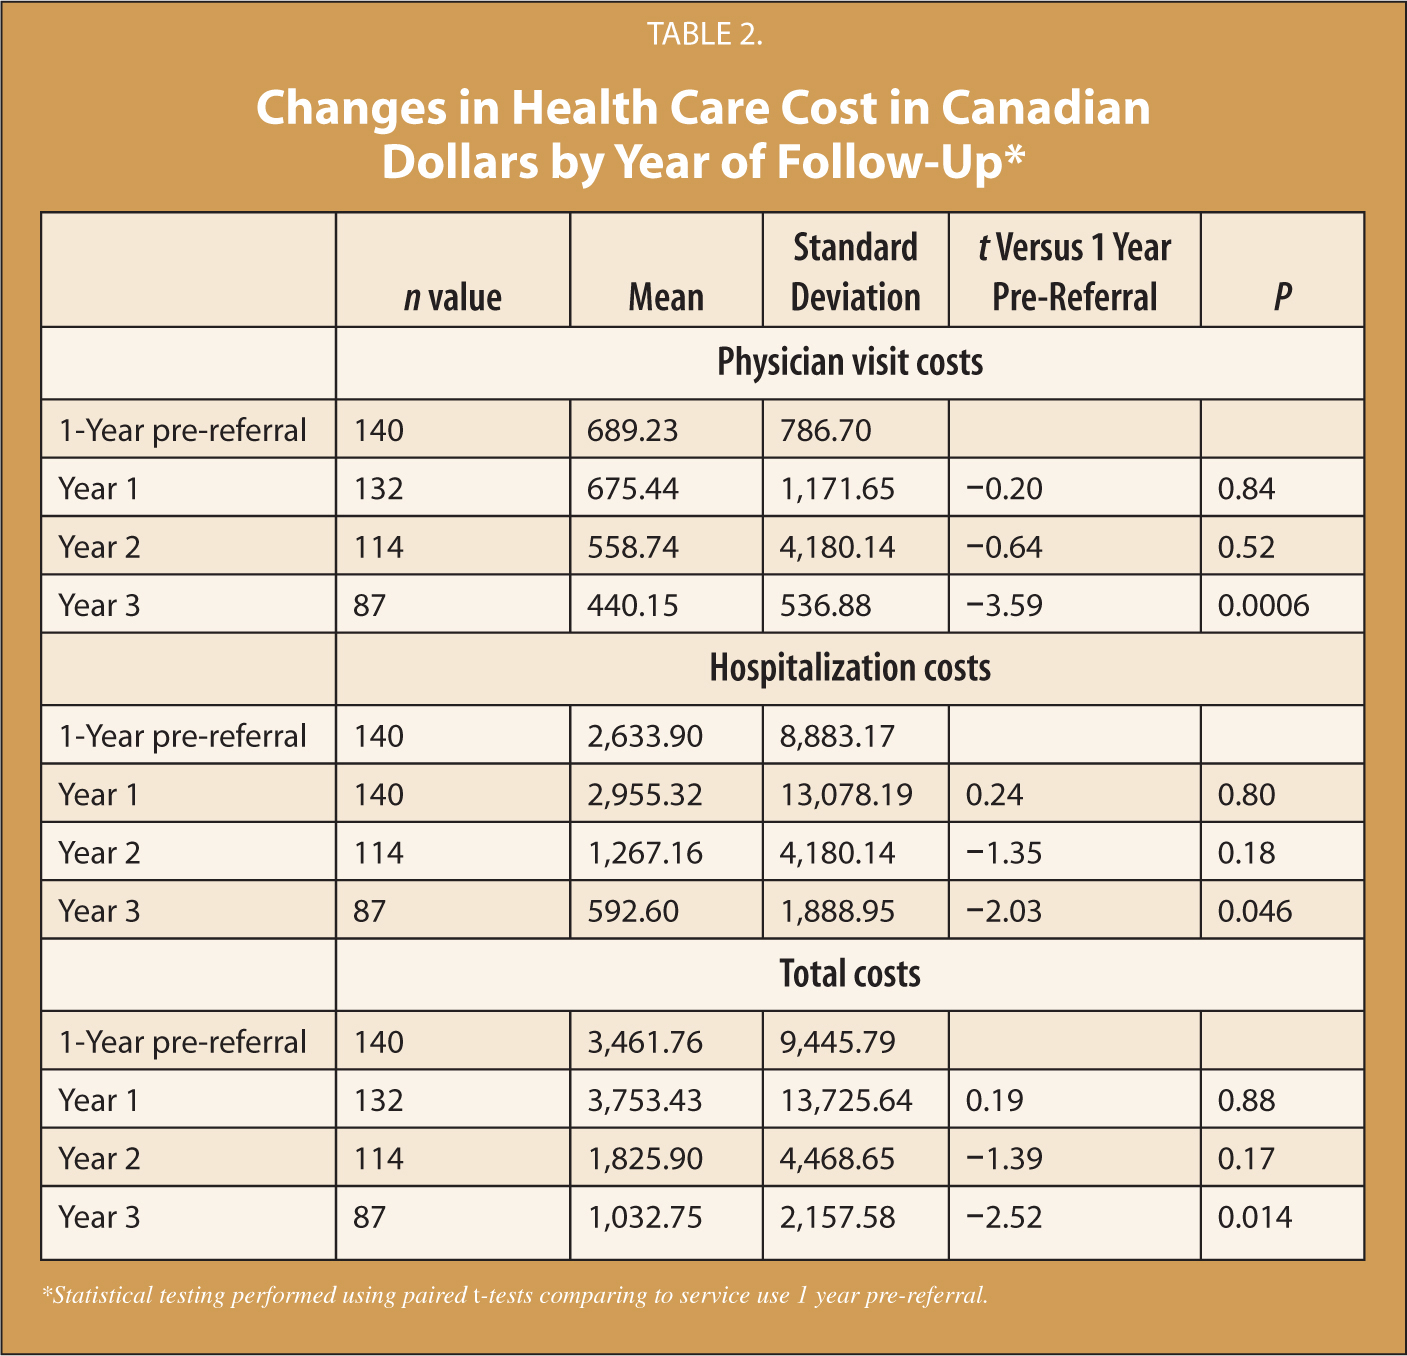 Changes in Health Care Cost in Canadian Dollars by Year of Follow-Up*